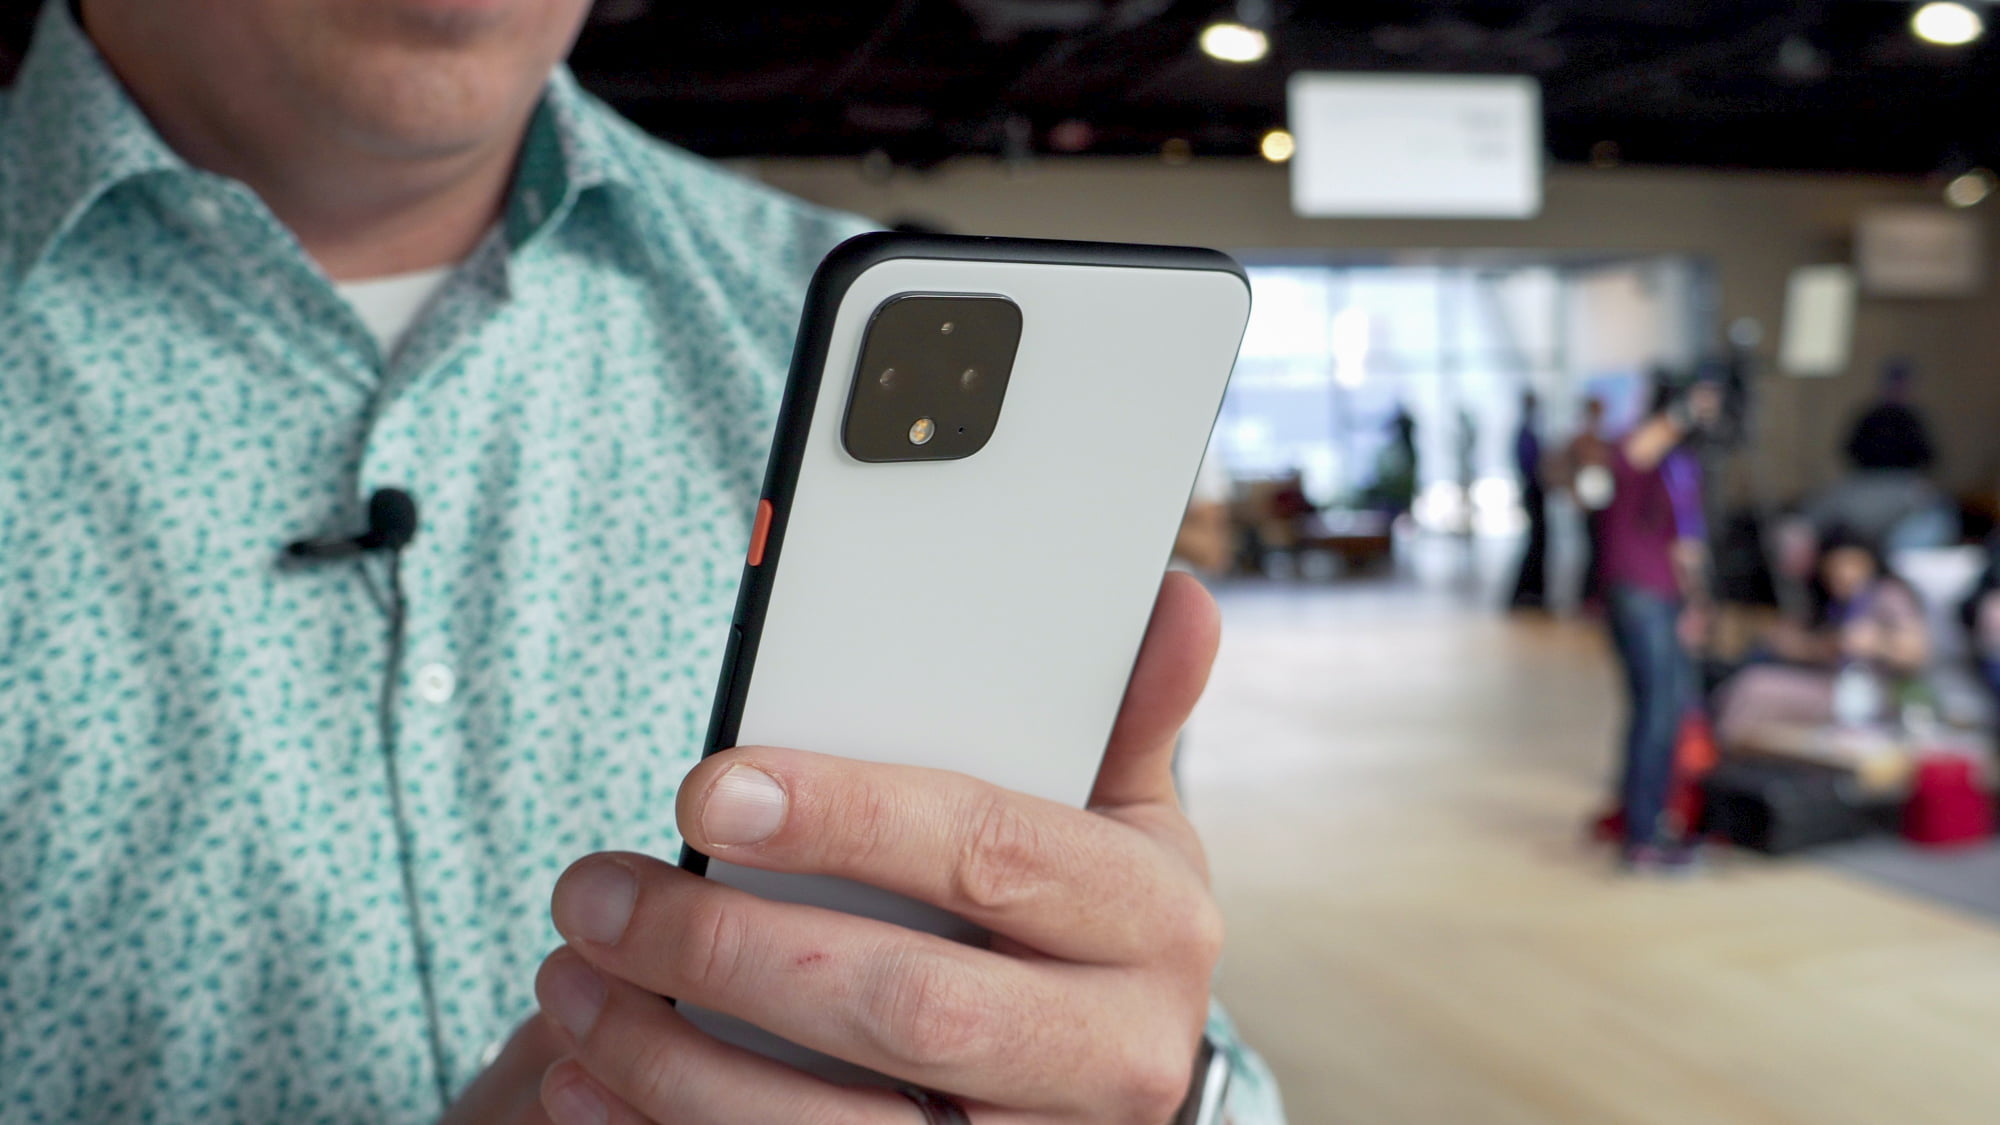 Google Pixel 4 Hands-On: Zero surprises make for an excellent first impression [VIDEO]